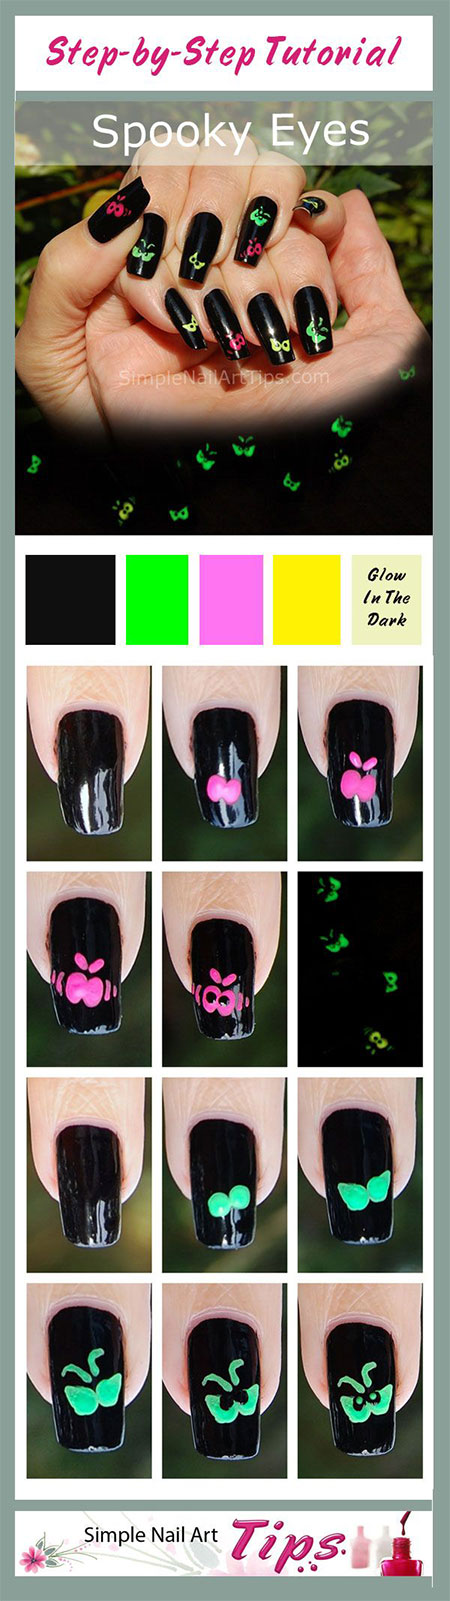 12-Easy-Step-By-Step-Halloween-Nail-Art-Tutorials-For-Beginners-Learners-2014-12